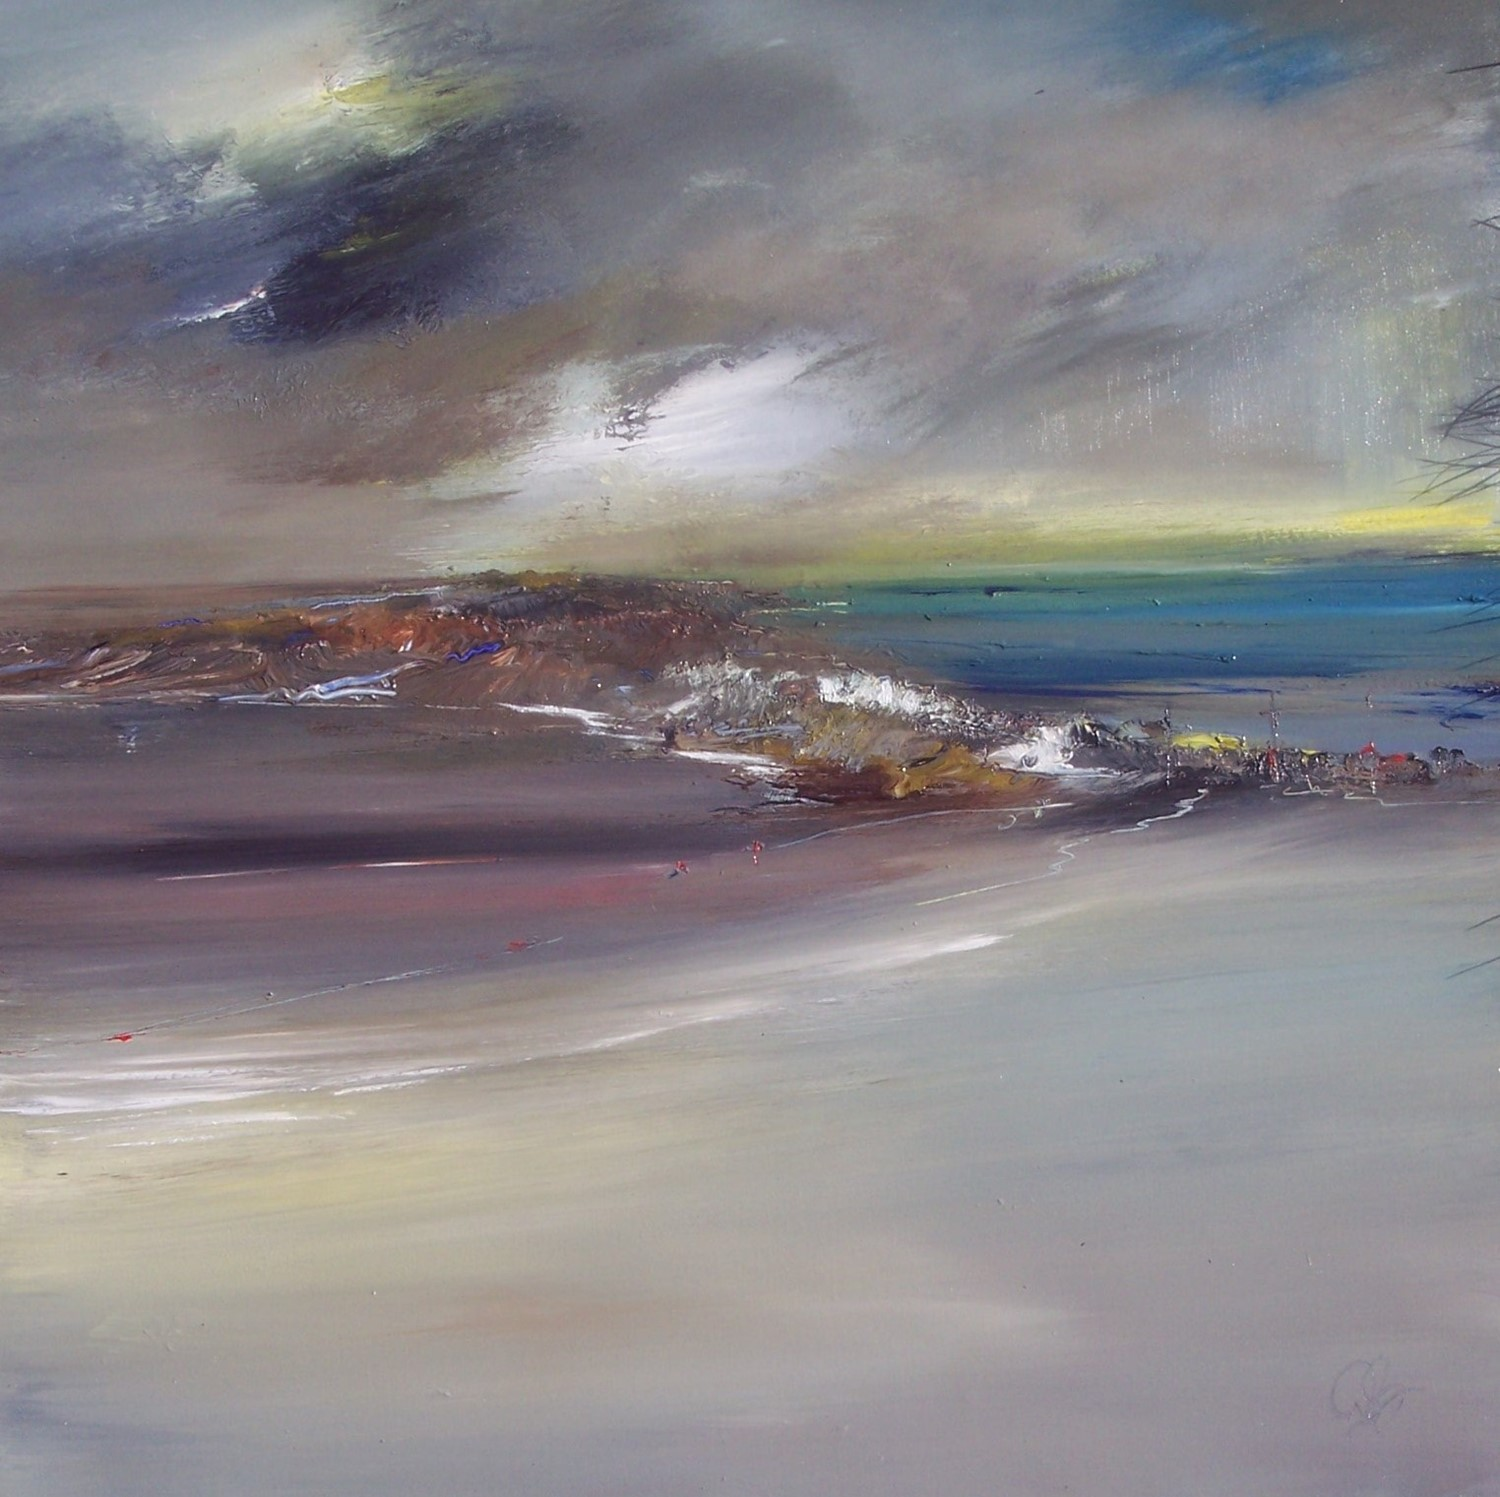 'WEST WEATHER' by artist Rosanne Barr